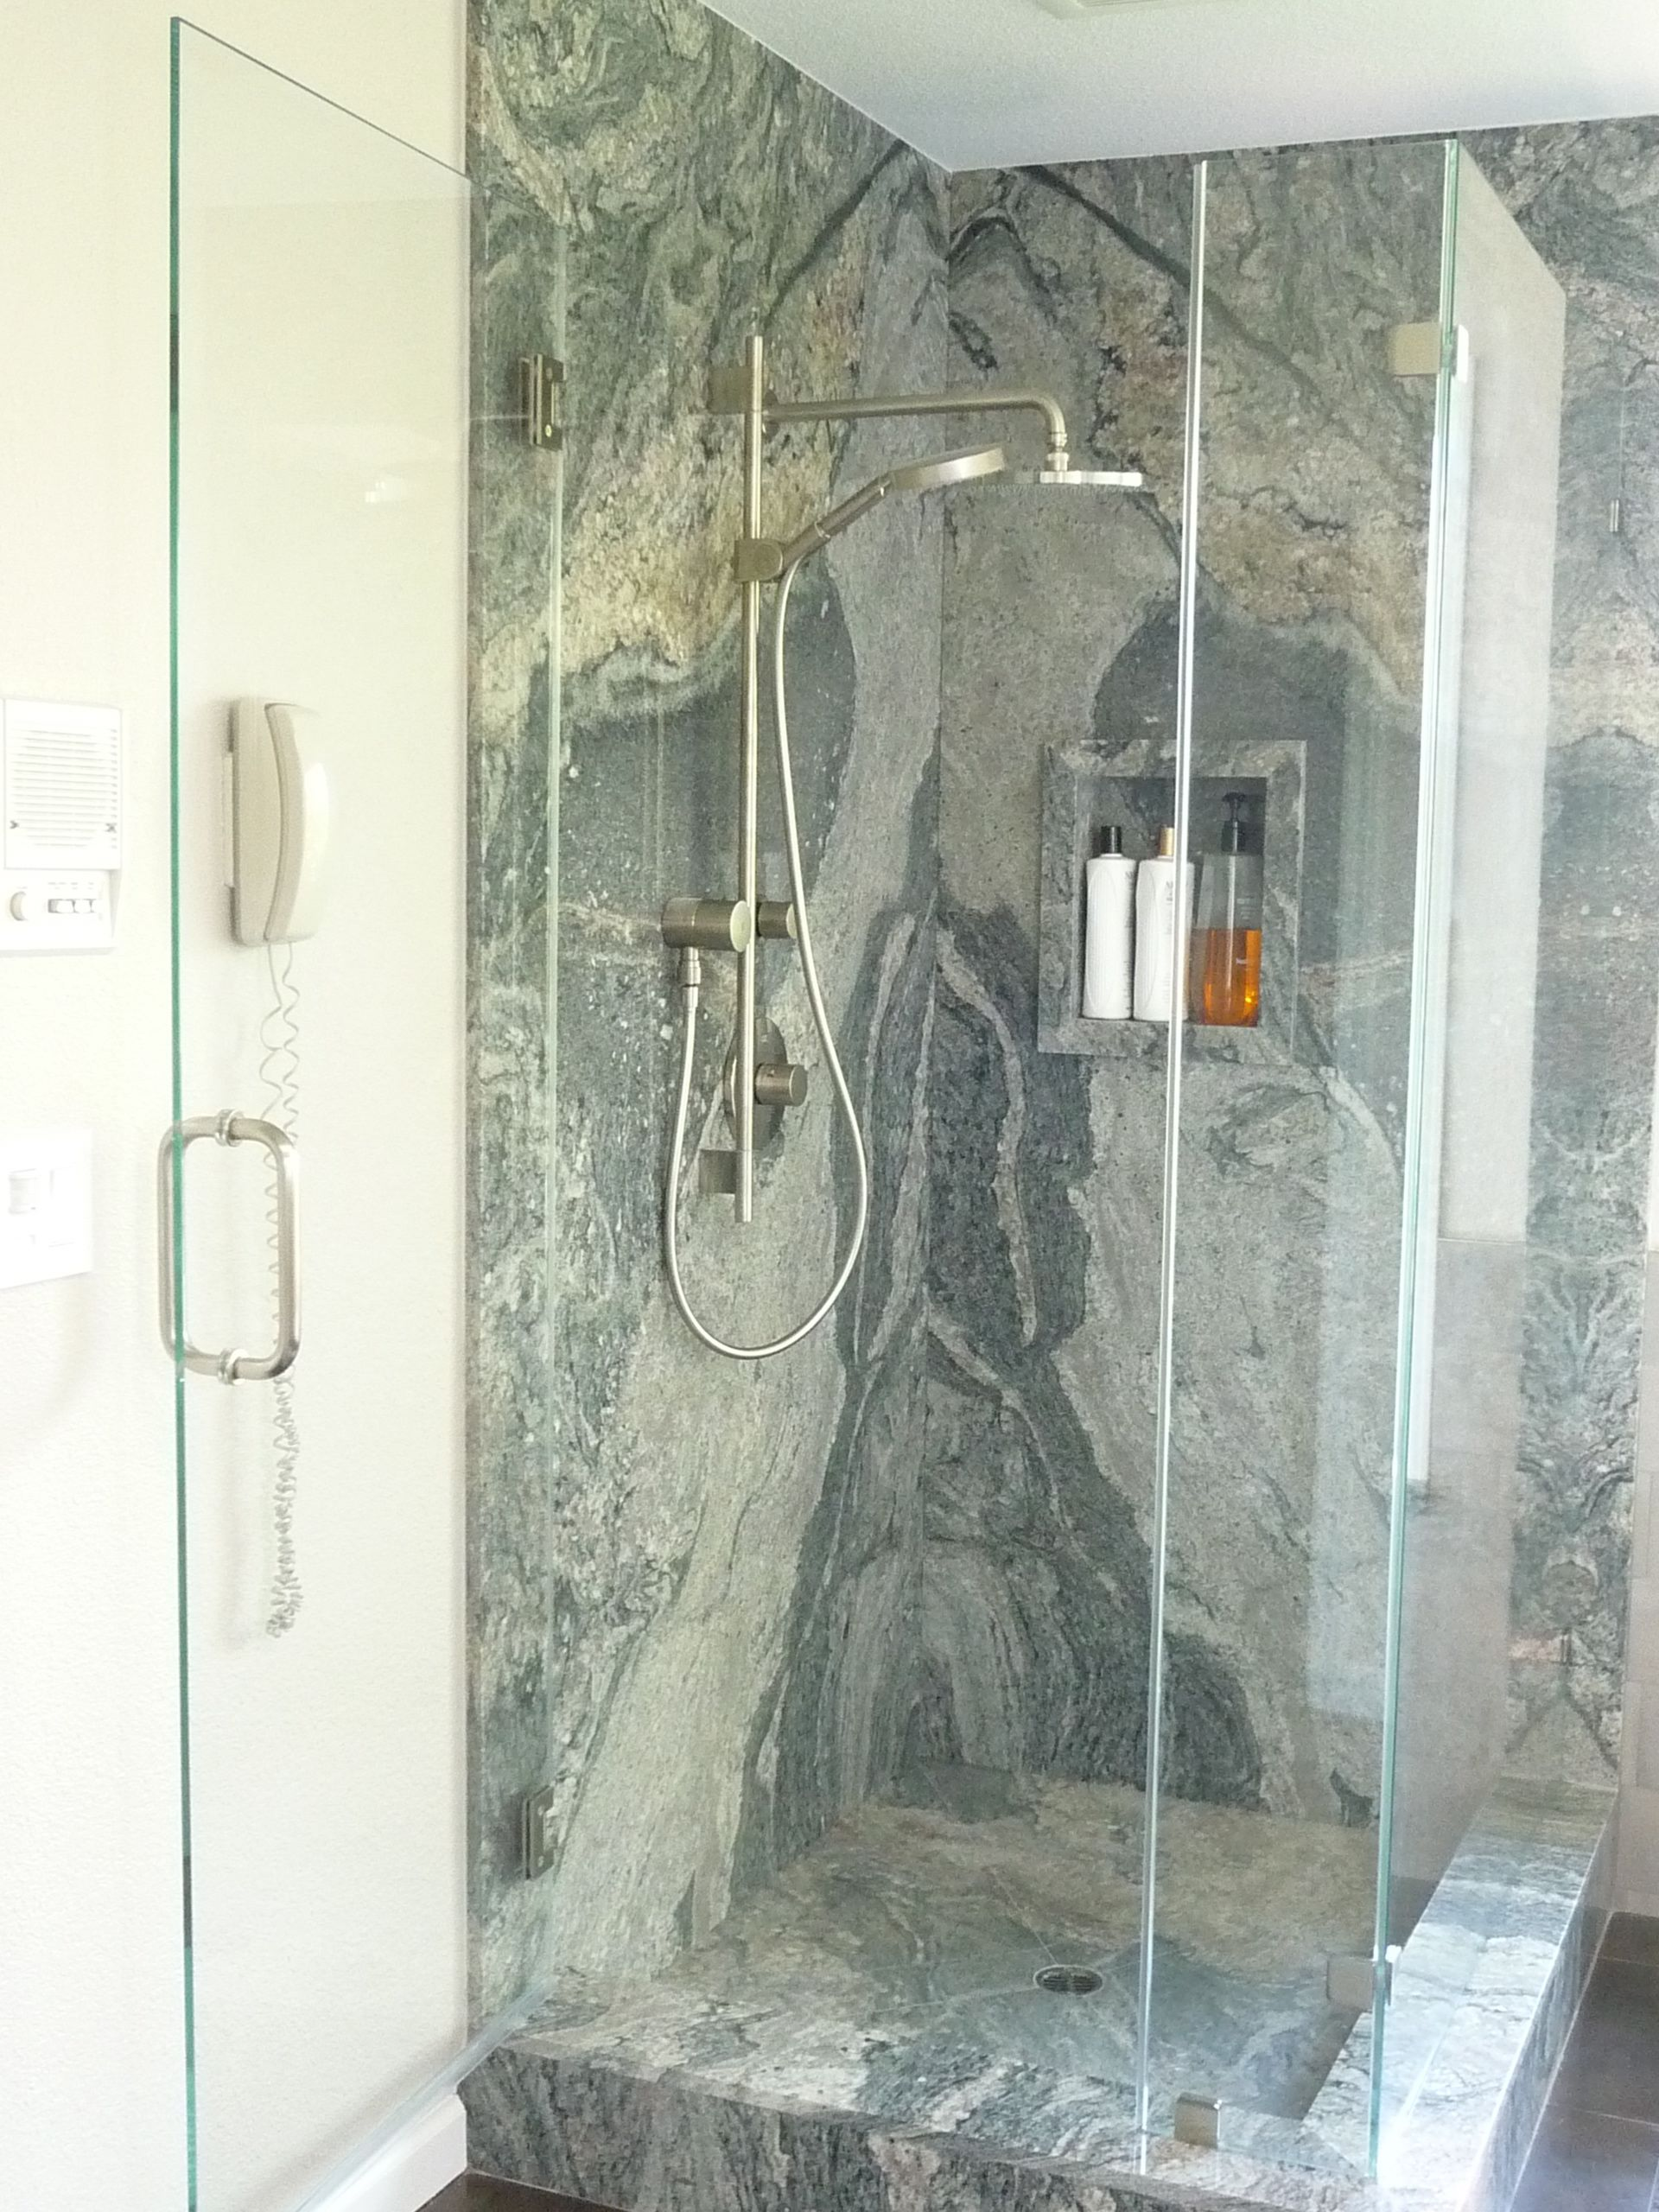 Piracema White Slab Shower Project Overview Part 1 Of 3